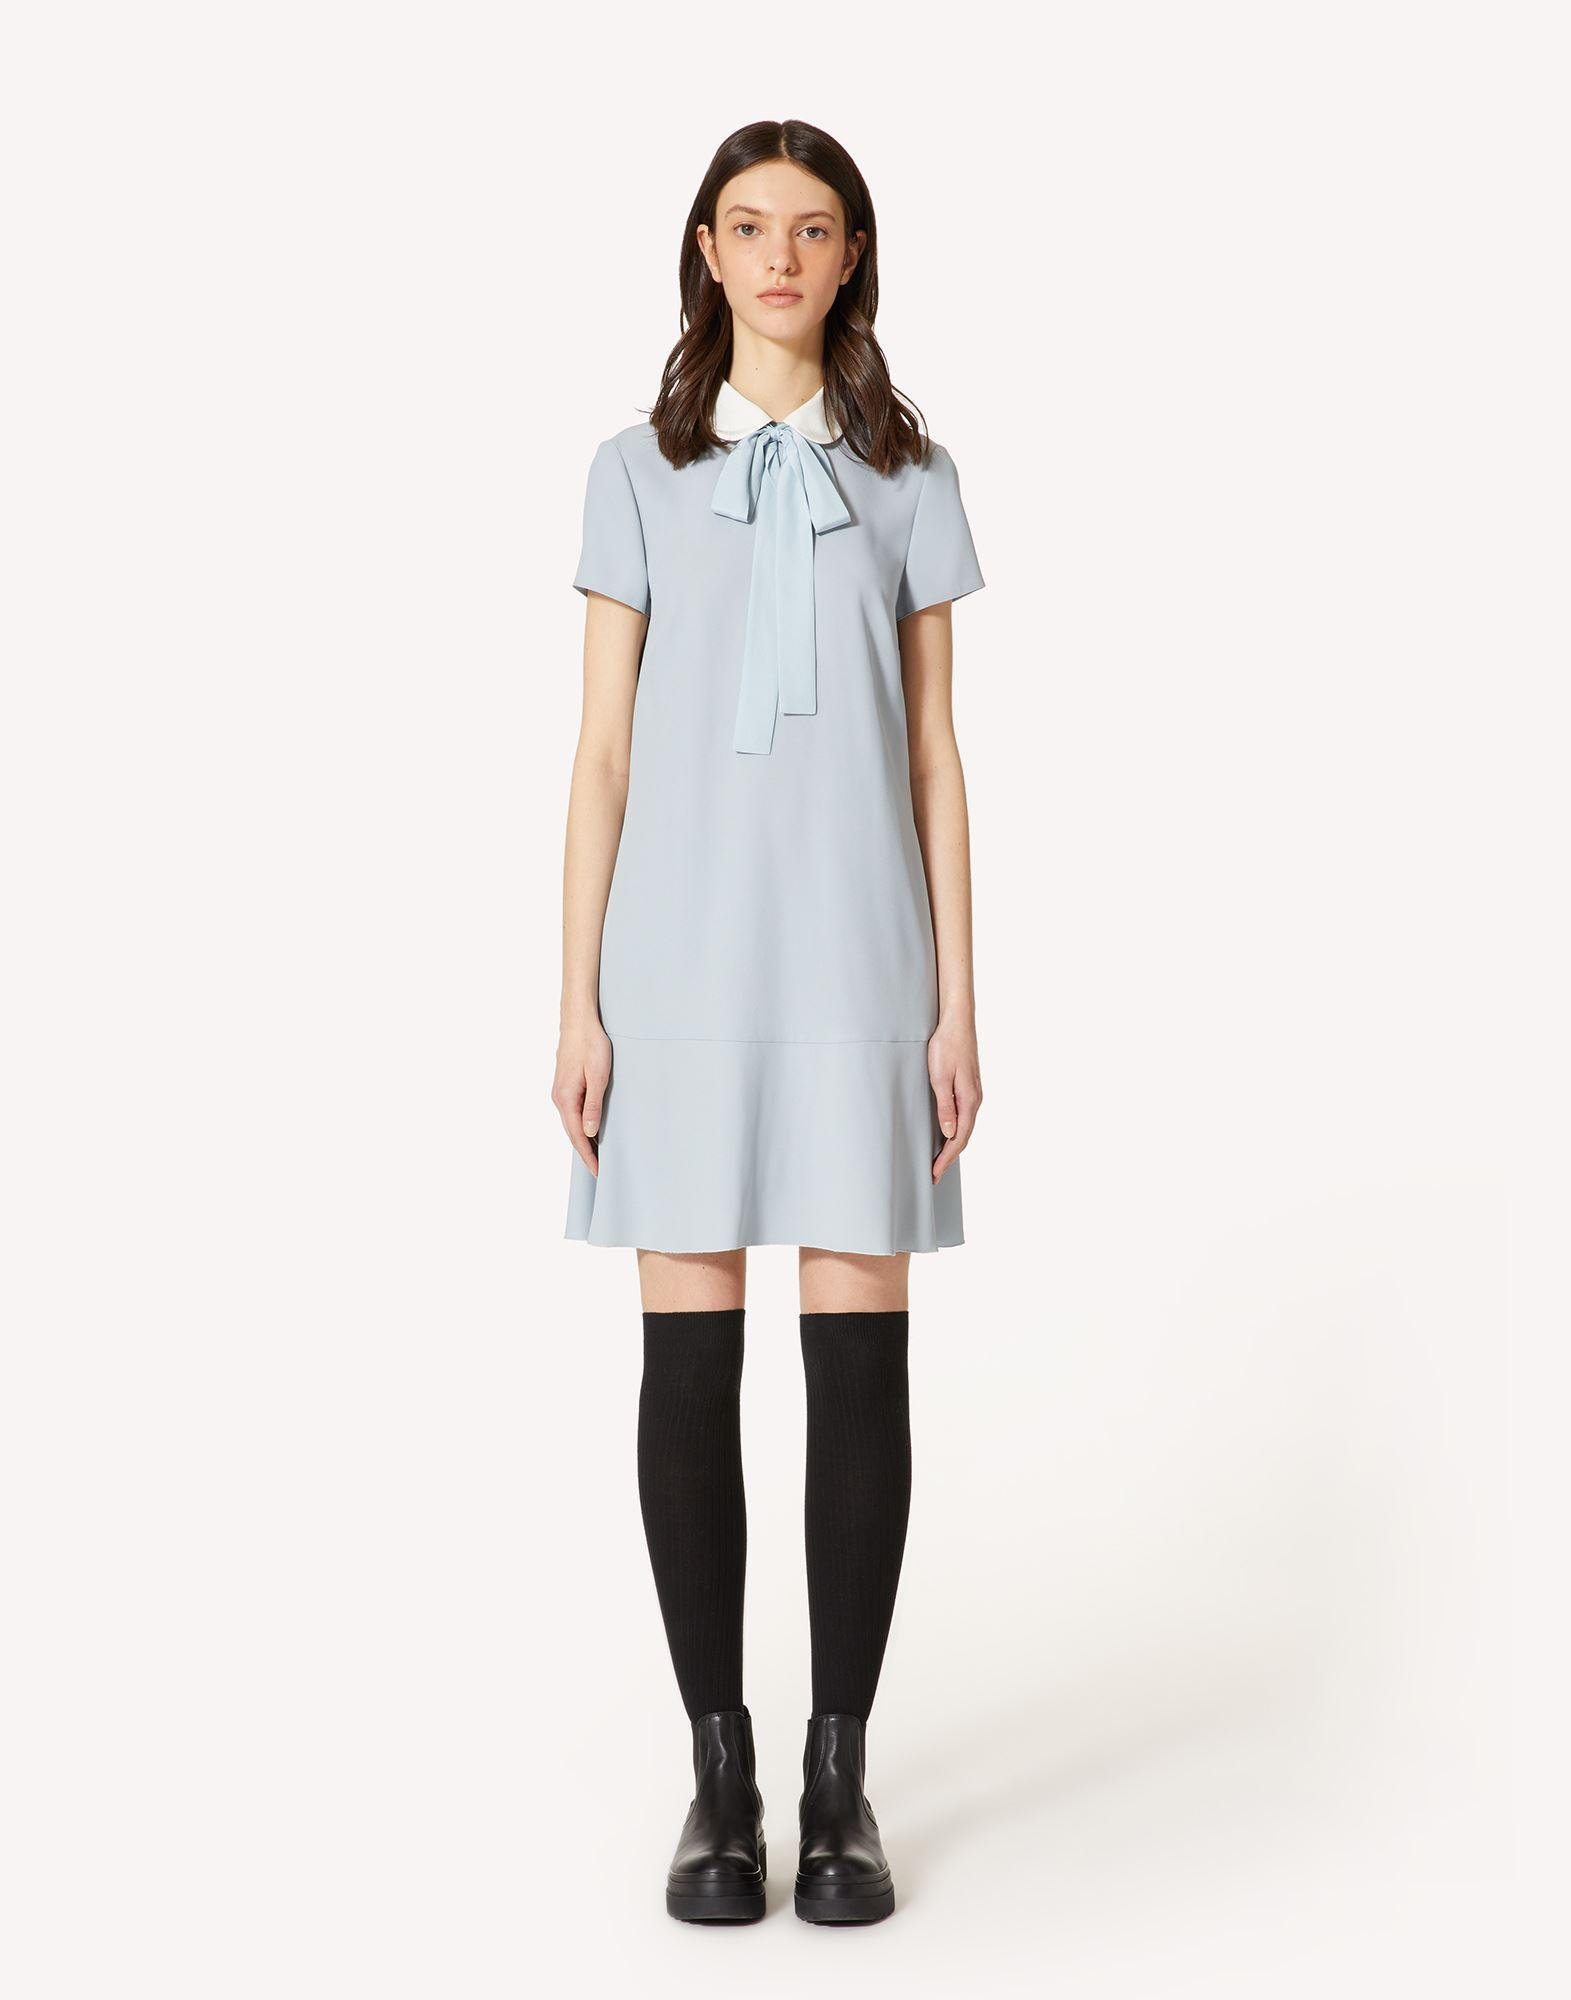 CREPE ENVERS SATIN DRESS WITH COLLAR